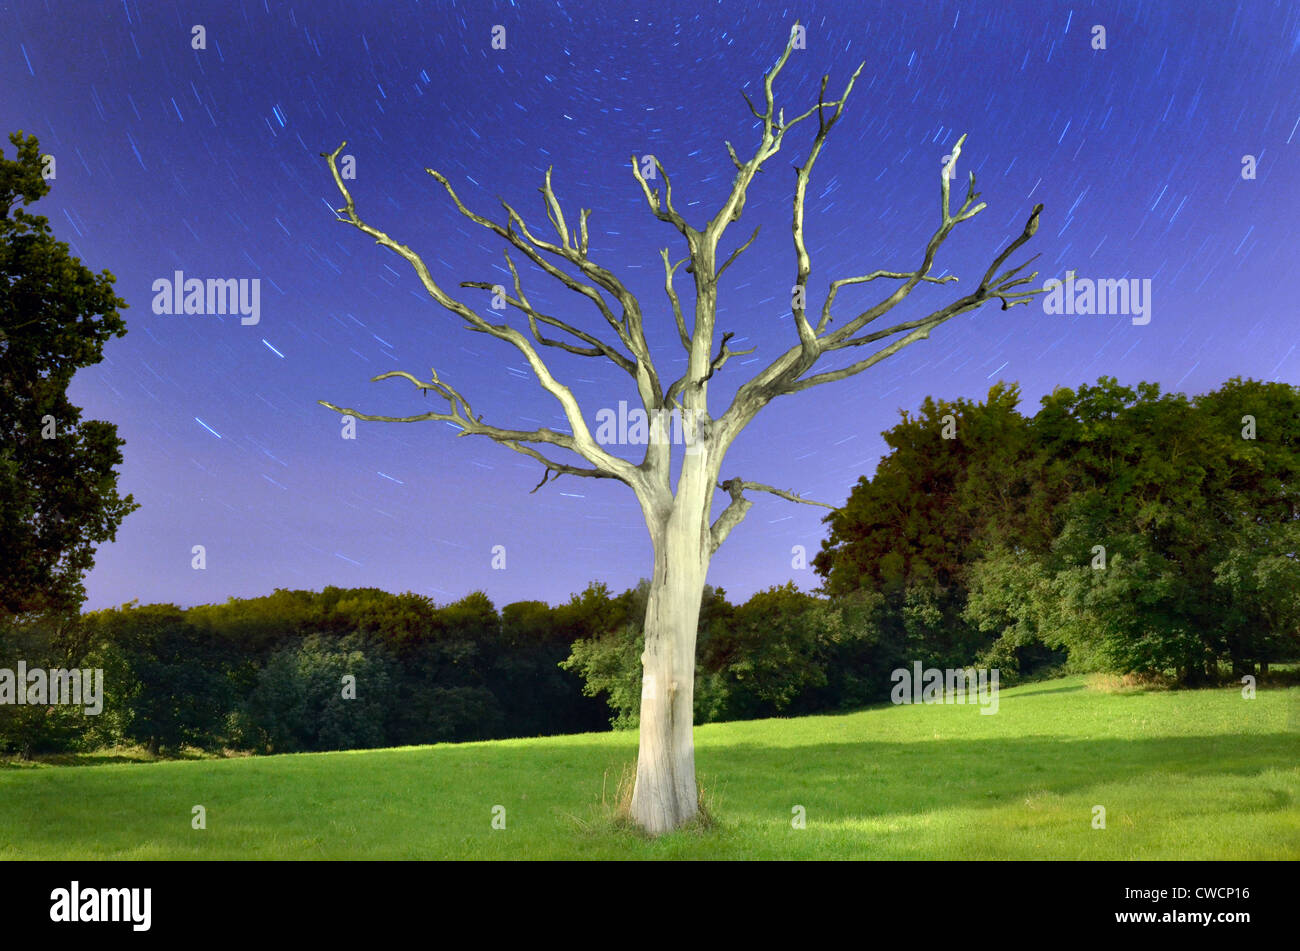 Digital composite of a dead tree taken at both day and night. WIth star trails and green fields. Stock Photo